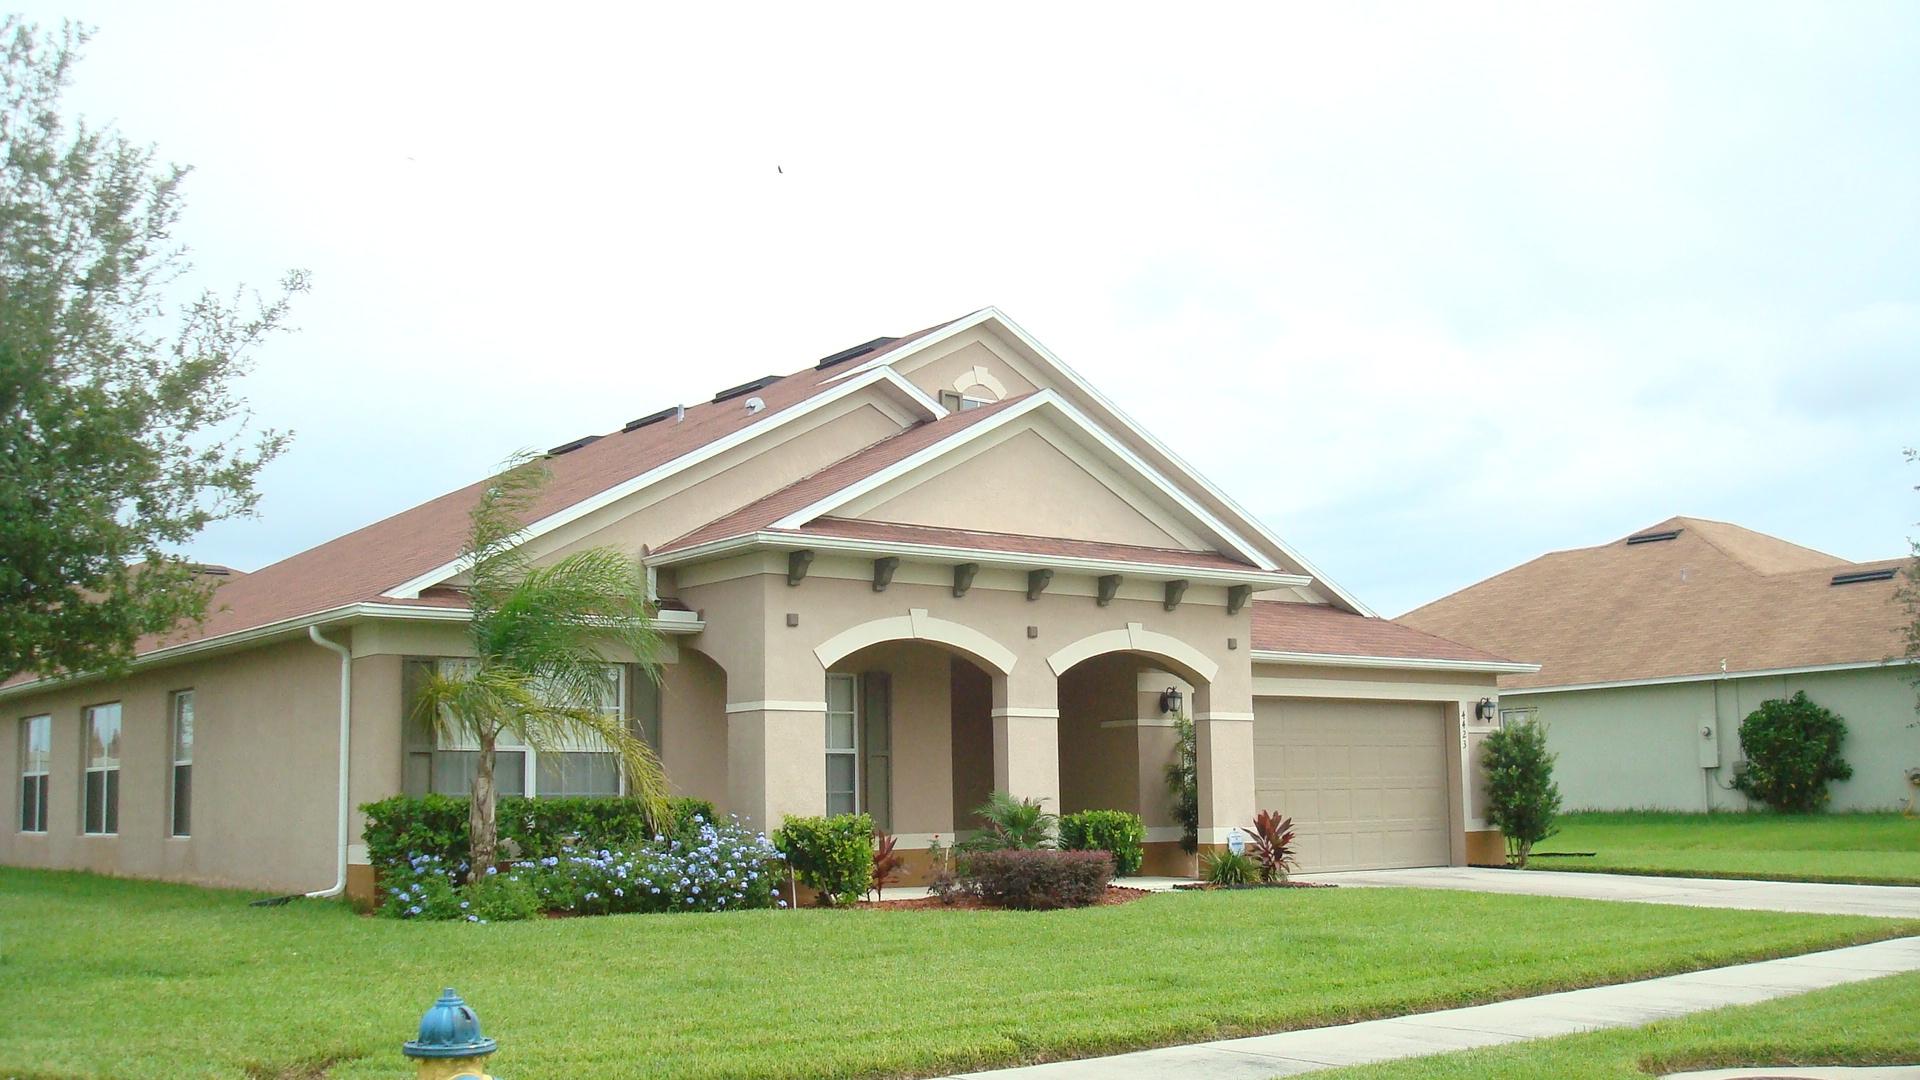 Houses for sale in clermont fl house plan 2017 for Florida house builders